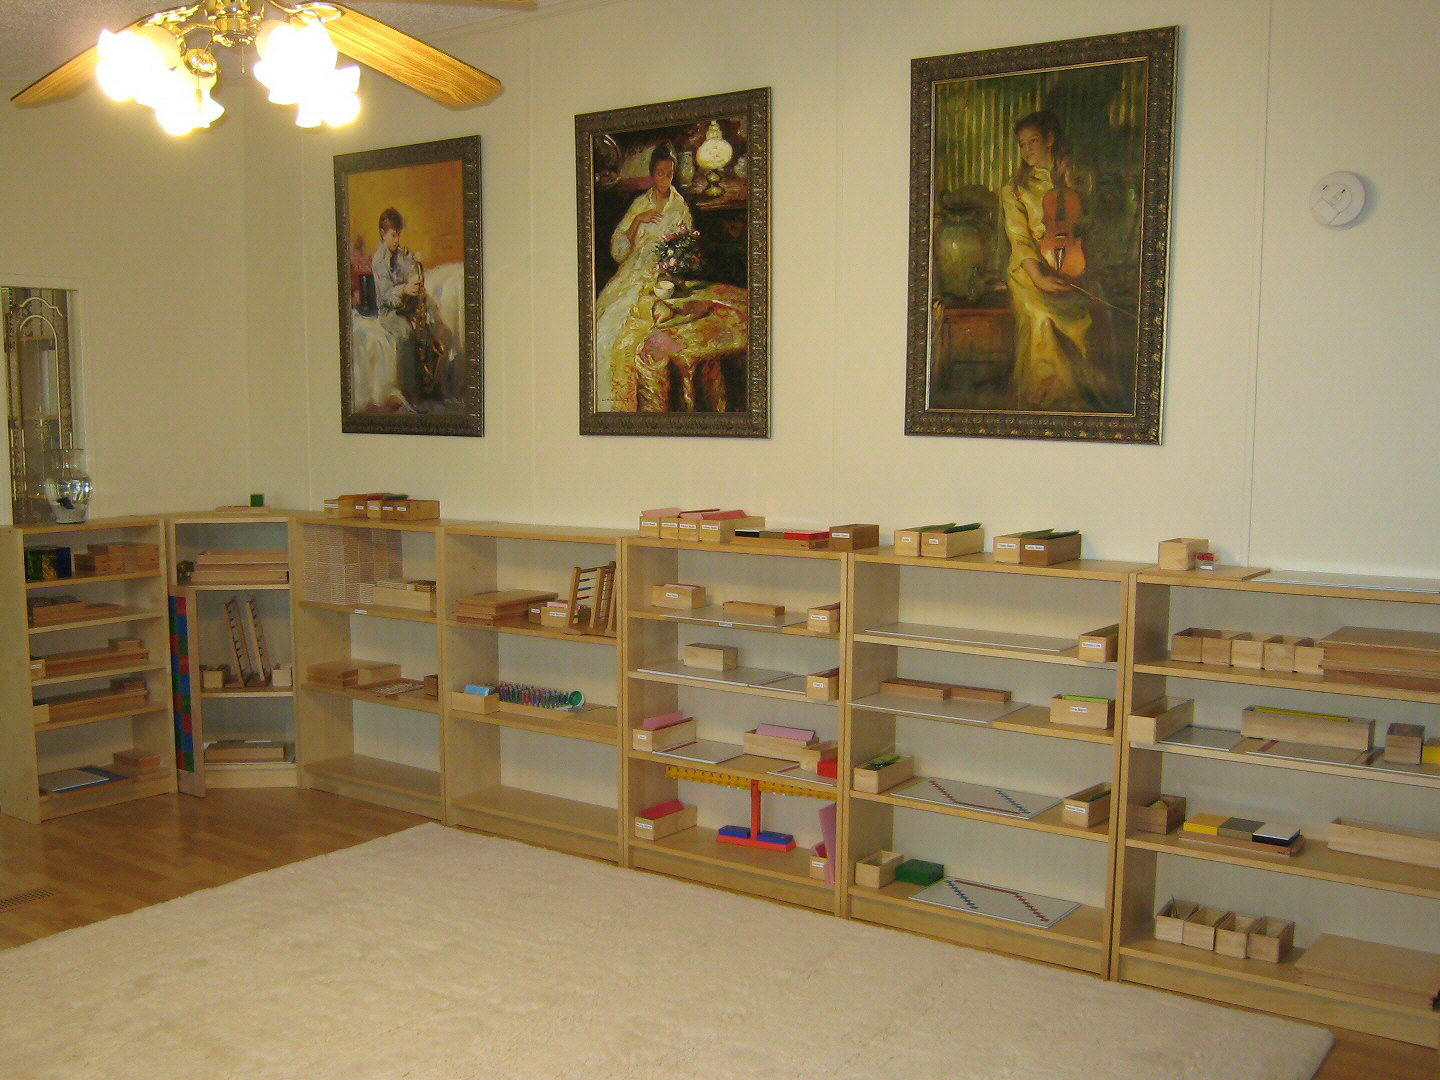 Montessori Classroom Design The classroom is filled with a